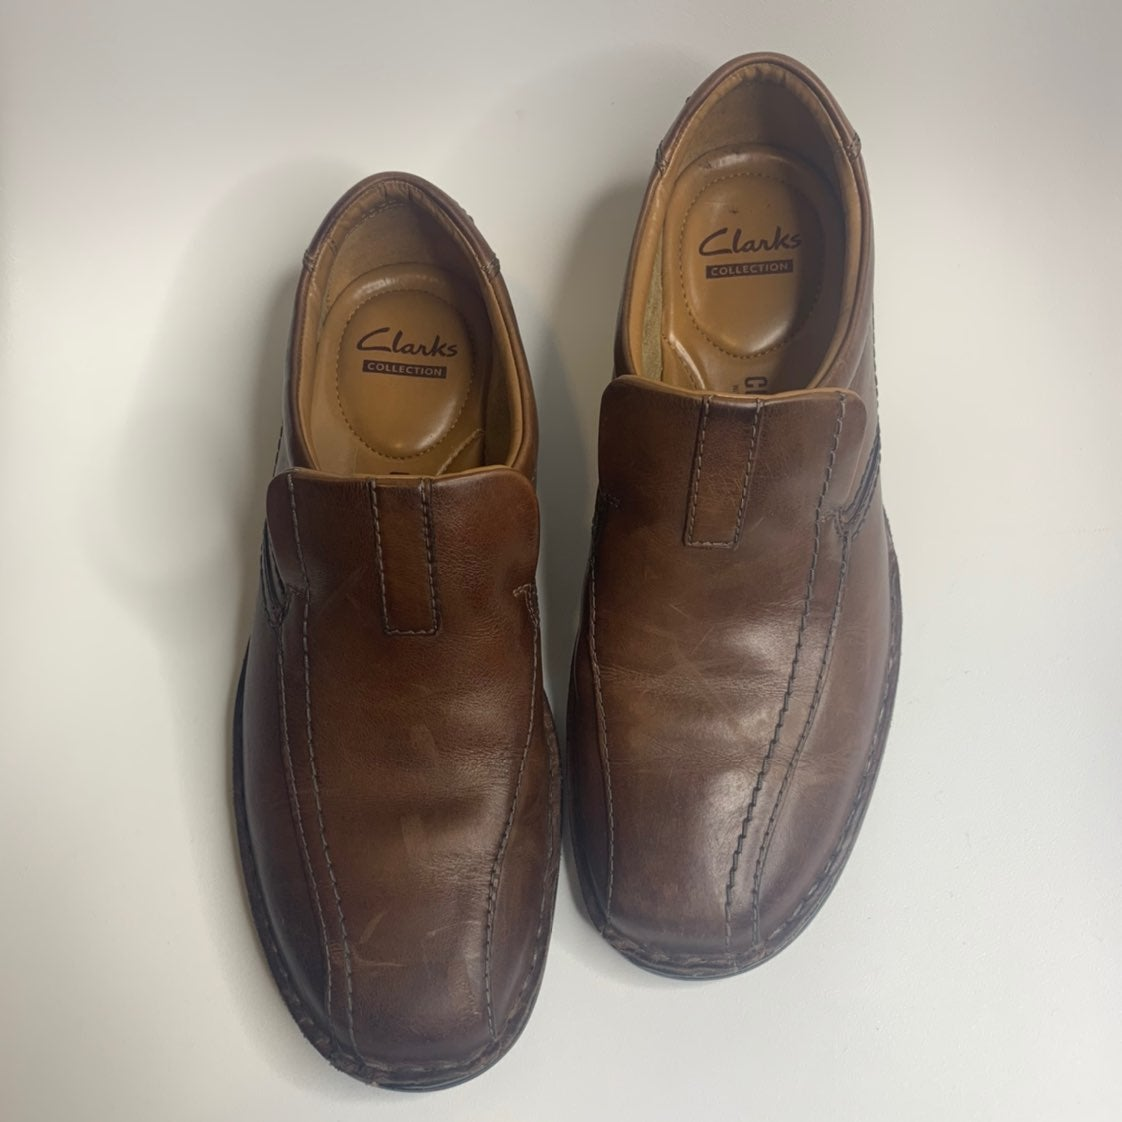 Clarks brown leather Escalade step shoes